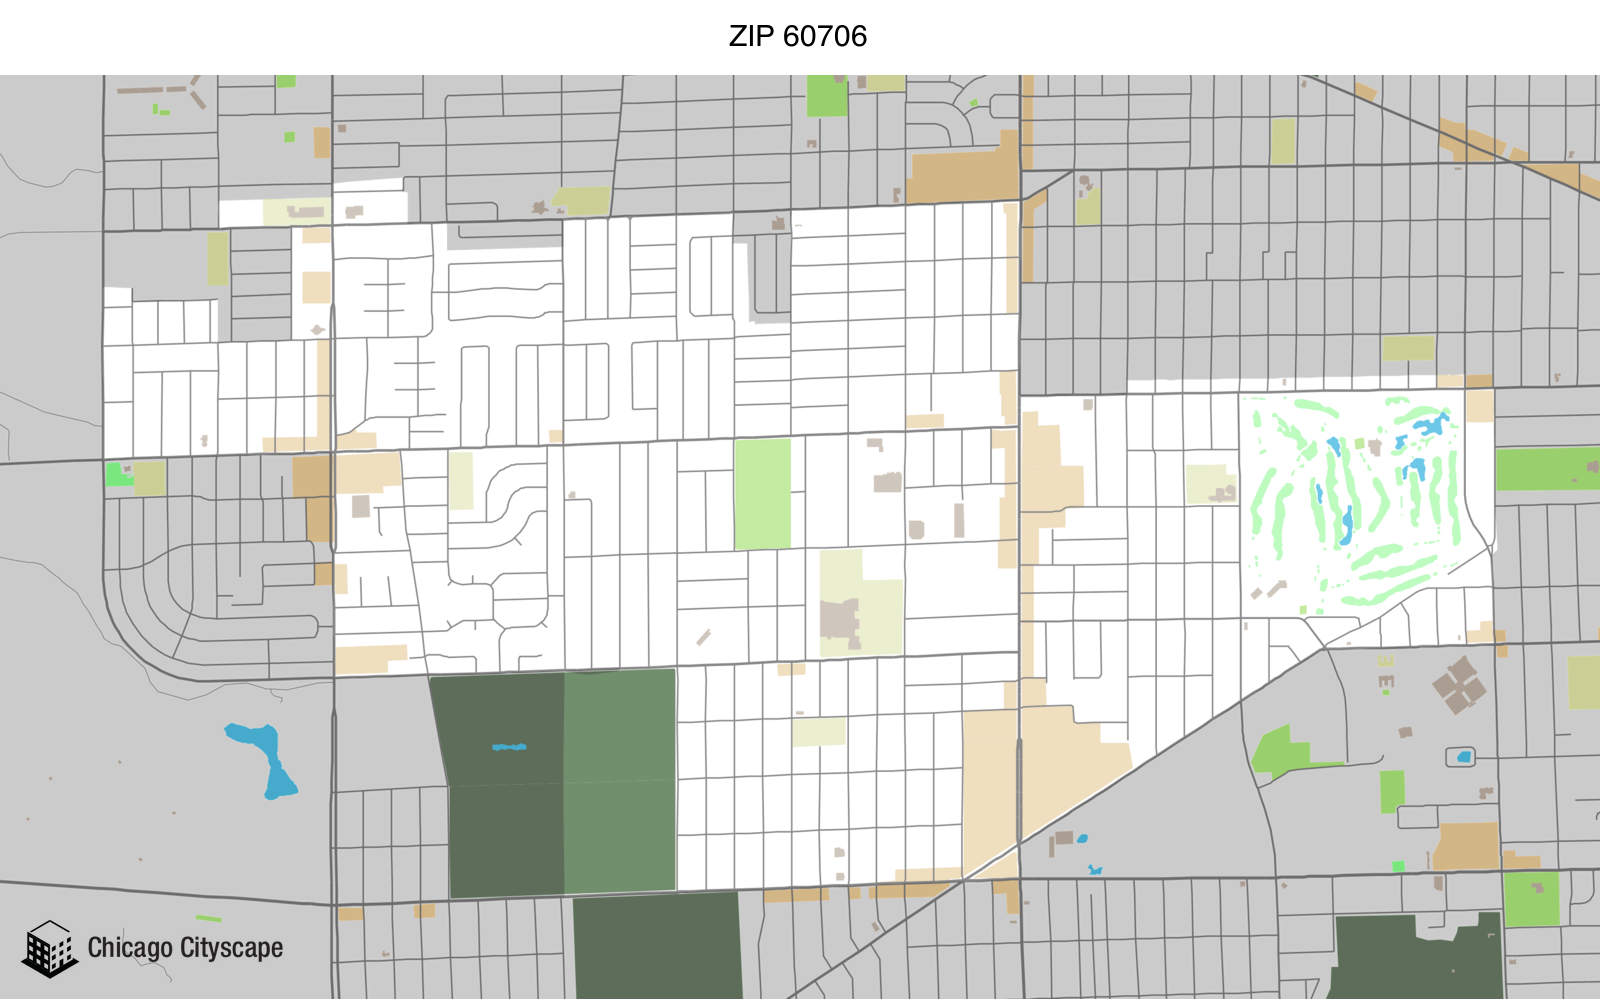 Map of building projects properties and businesses in 60706 ZIP Code